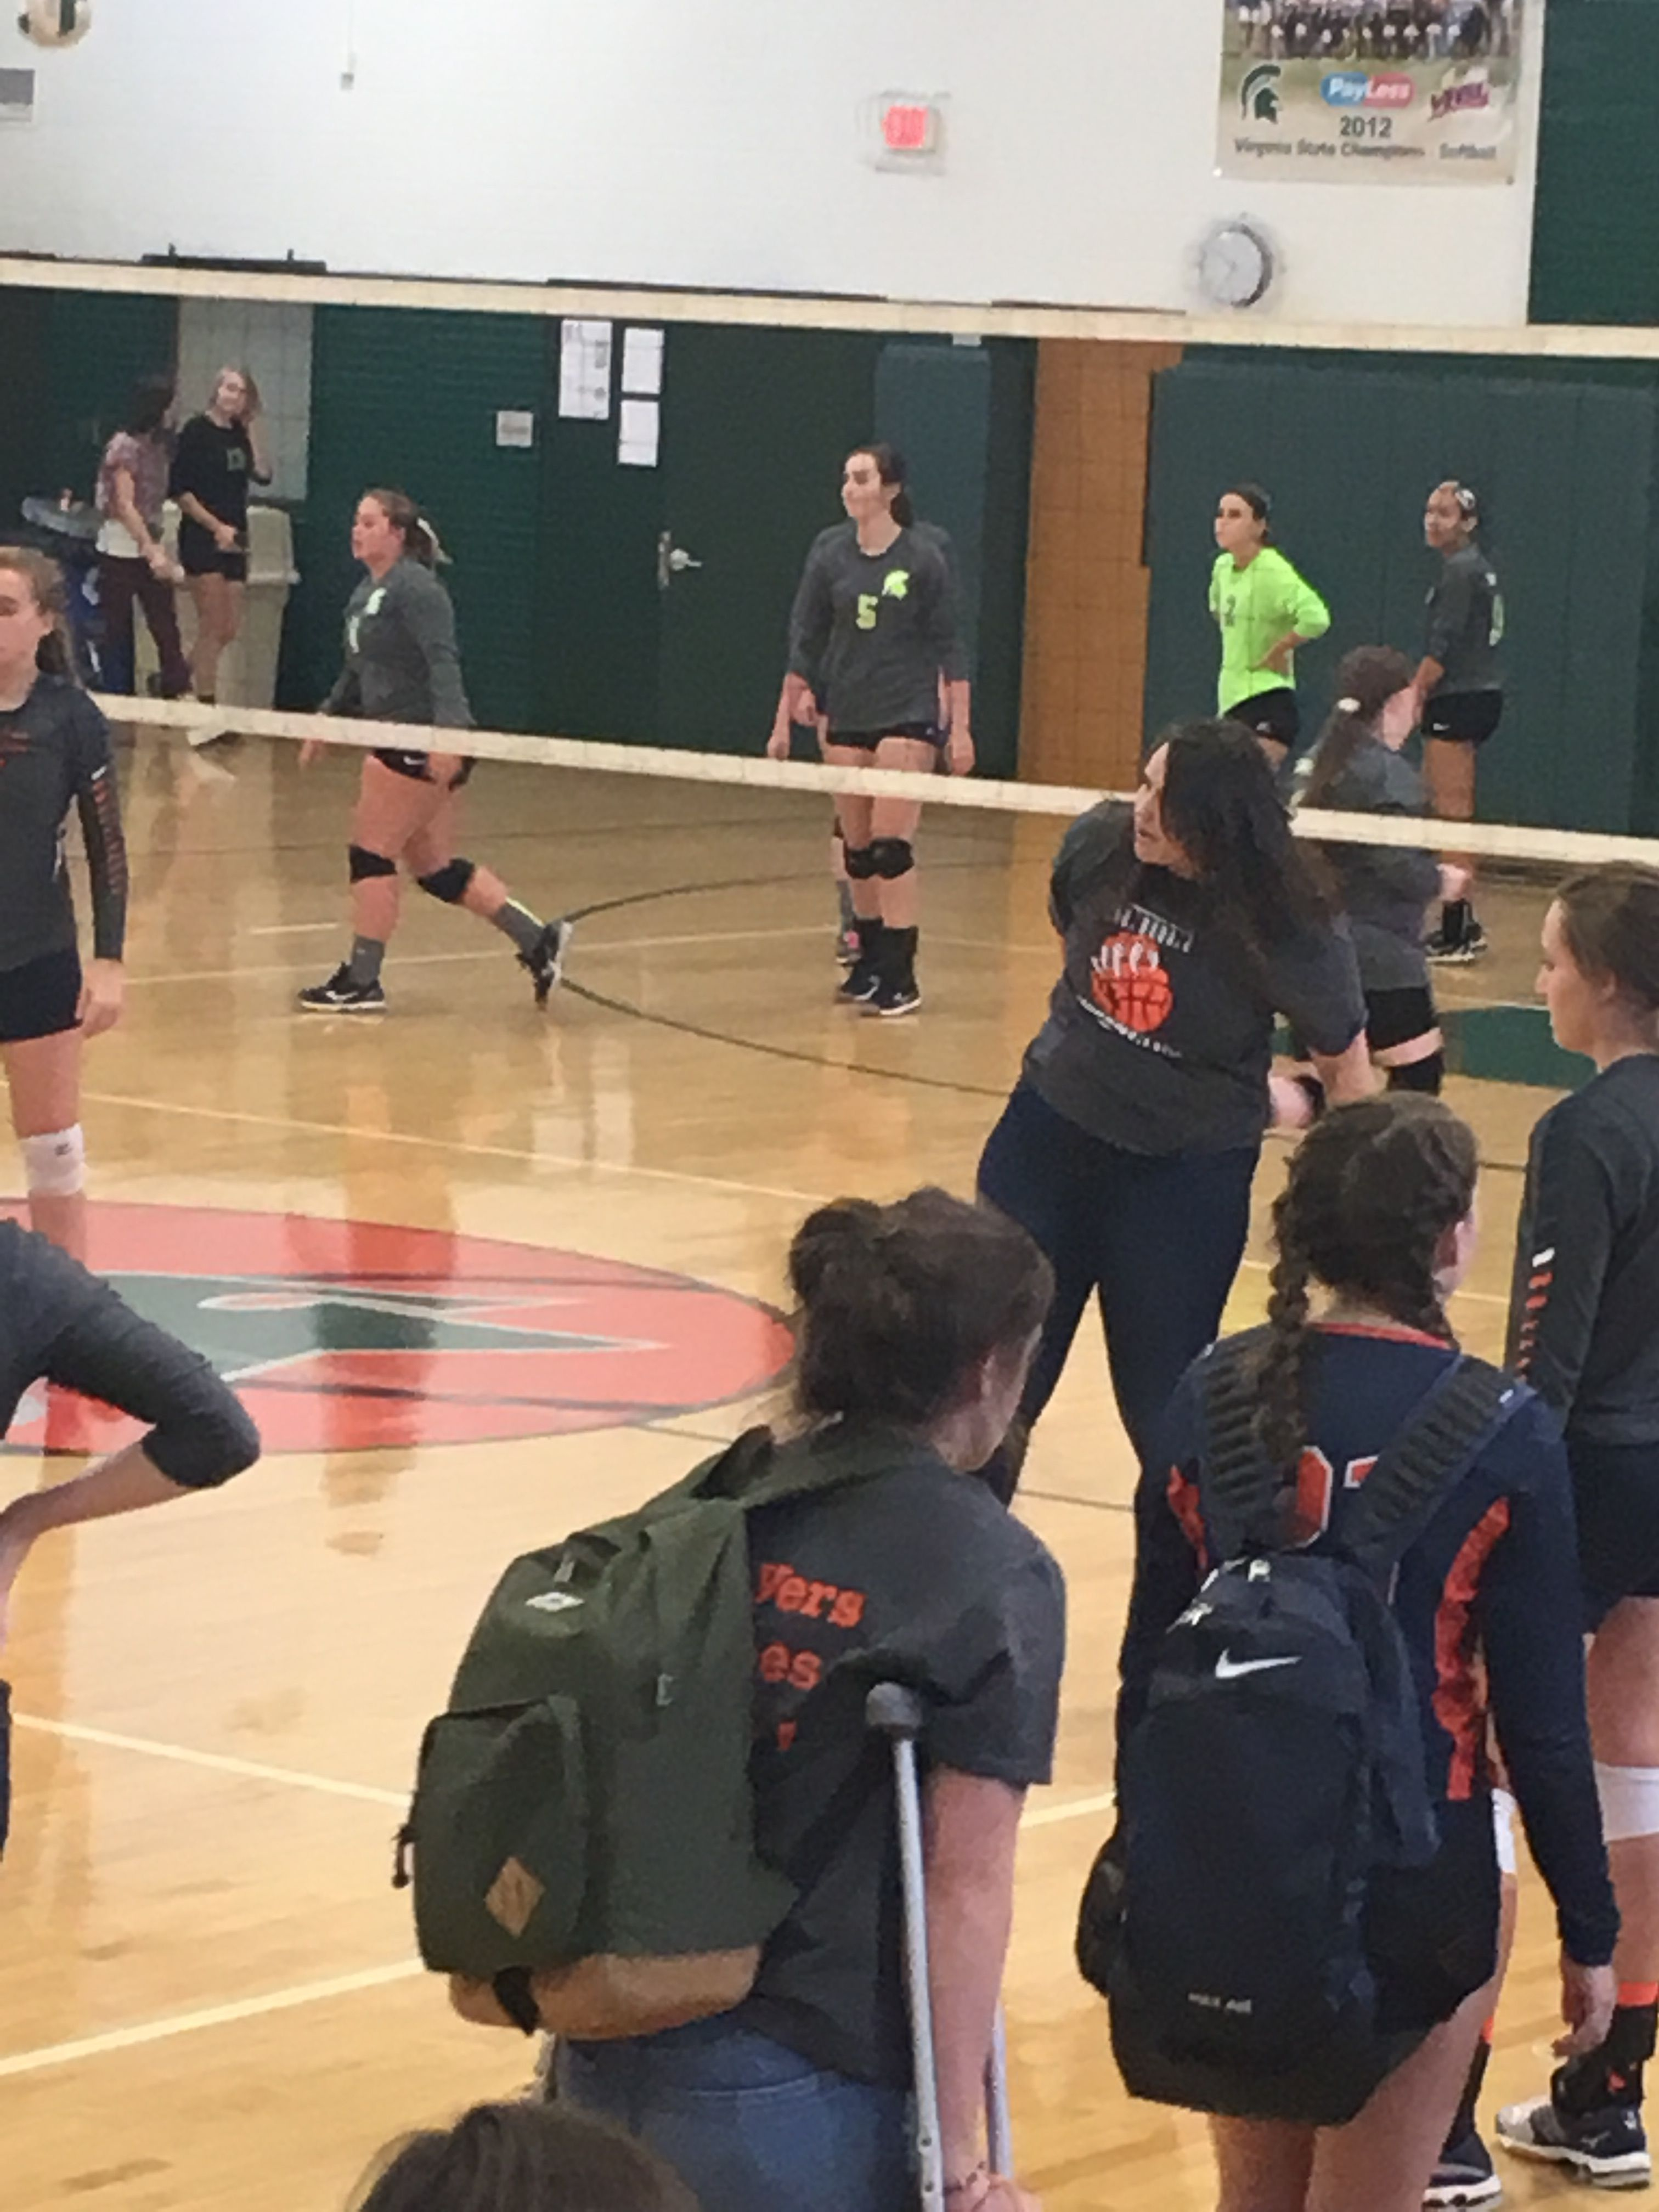 Pin By Deborah On Life In Volleyball With Kim Mathes Moore North Face Backpack Fjallraven Kanken Backpack Big Stone Gap Virginia